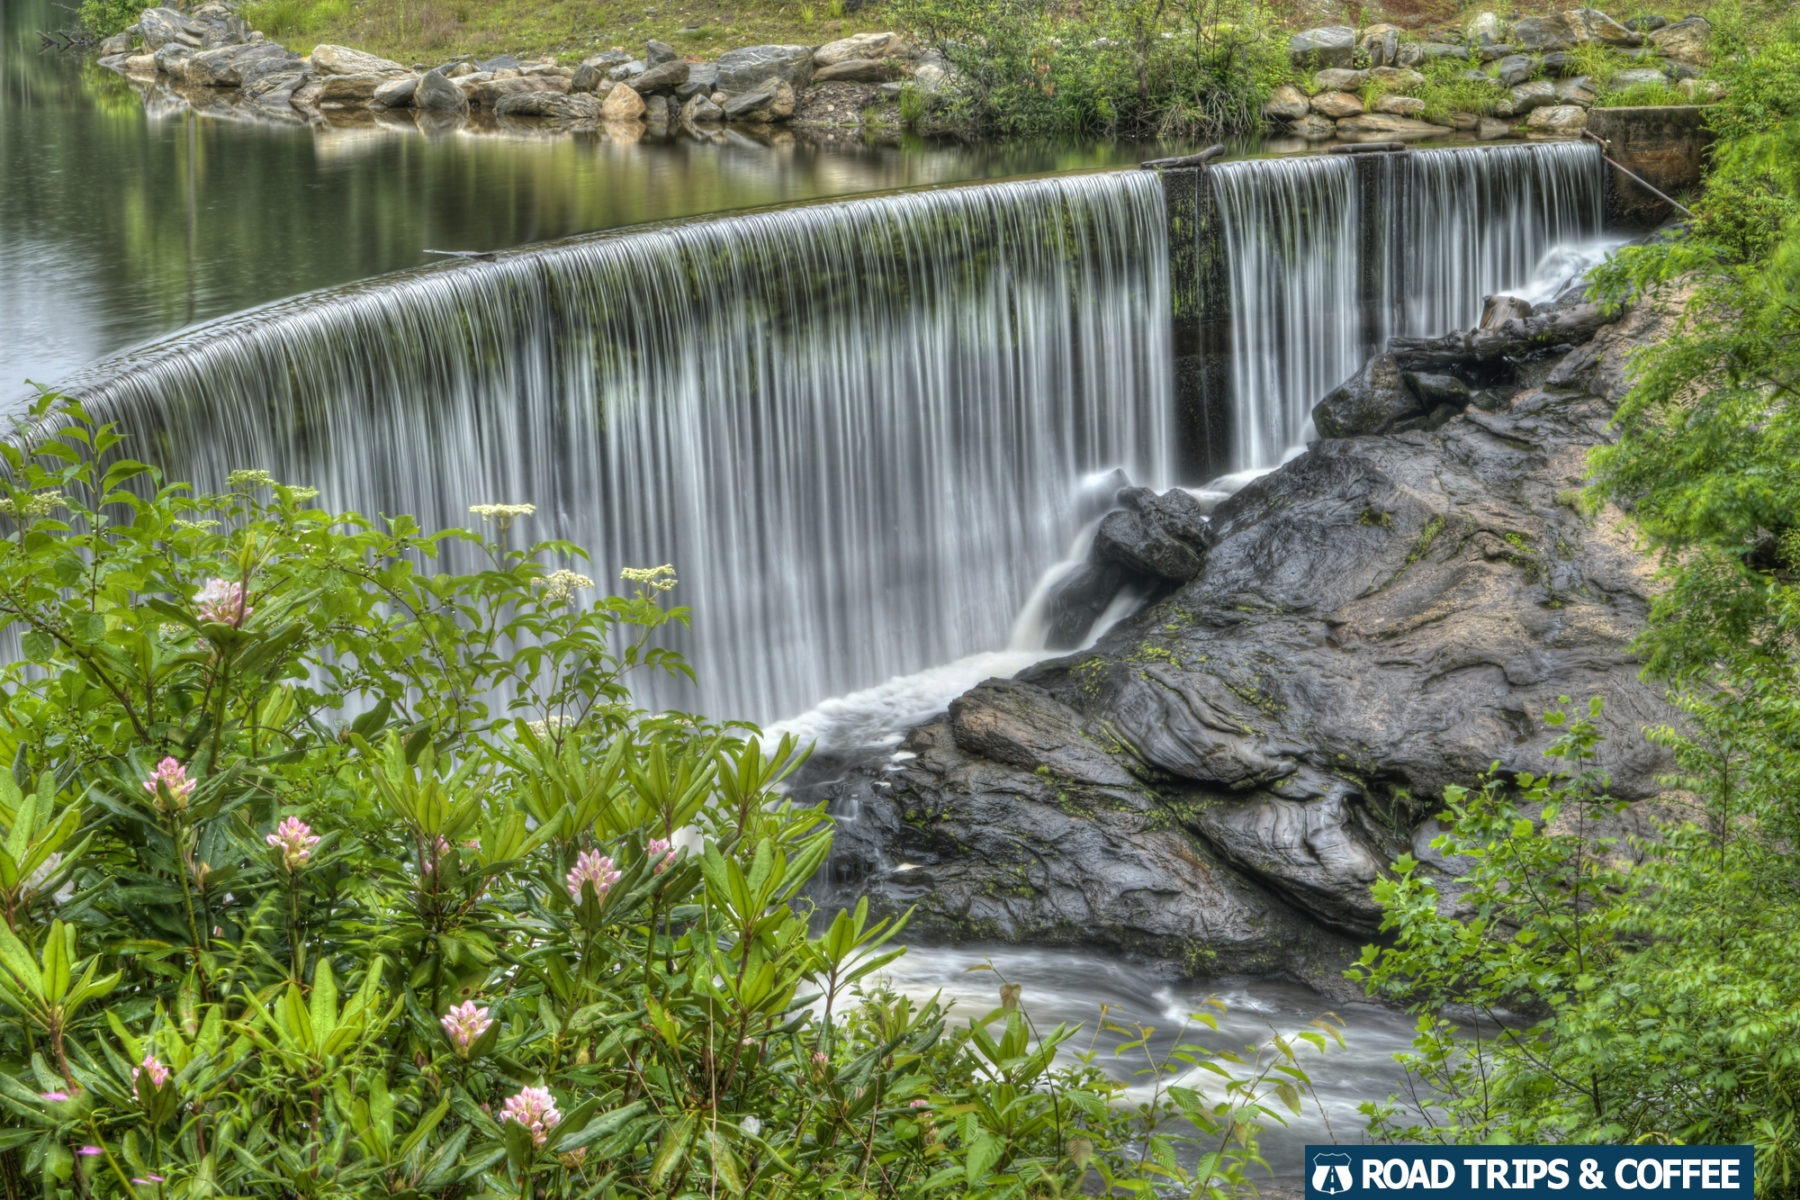 Water spills over the top of a small stone dam at Sequoyah Falls in Highlands, North Carolina